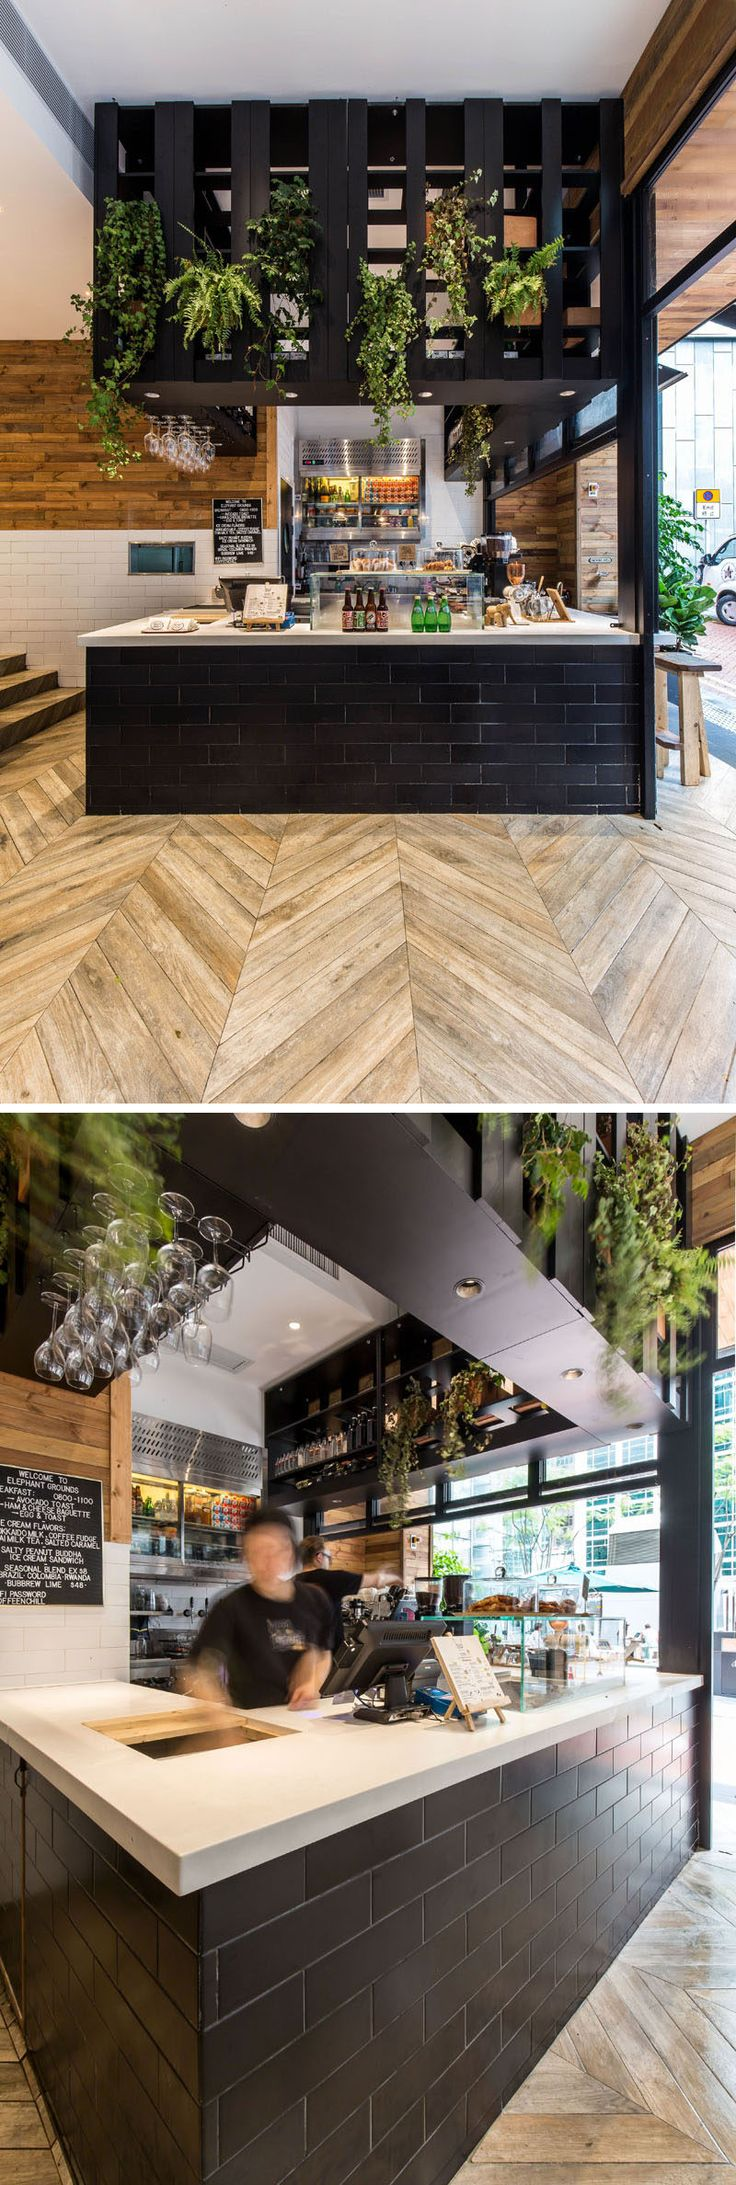 best 25+ cafe design ideas on pinterest | coffee shop design